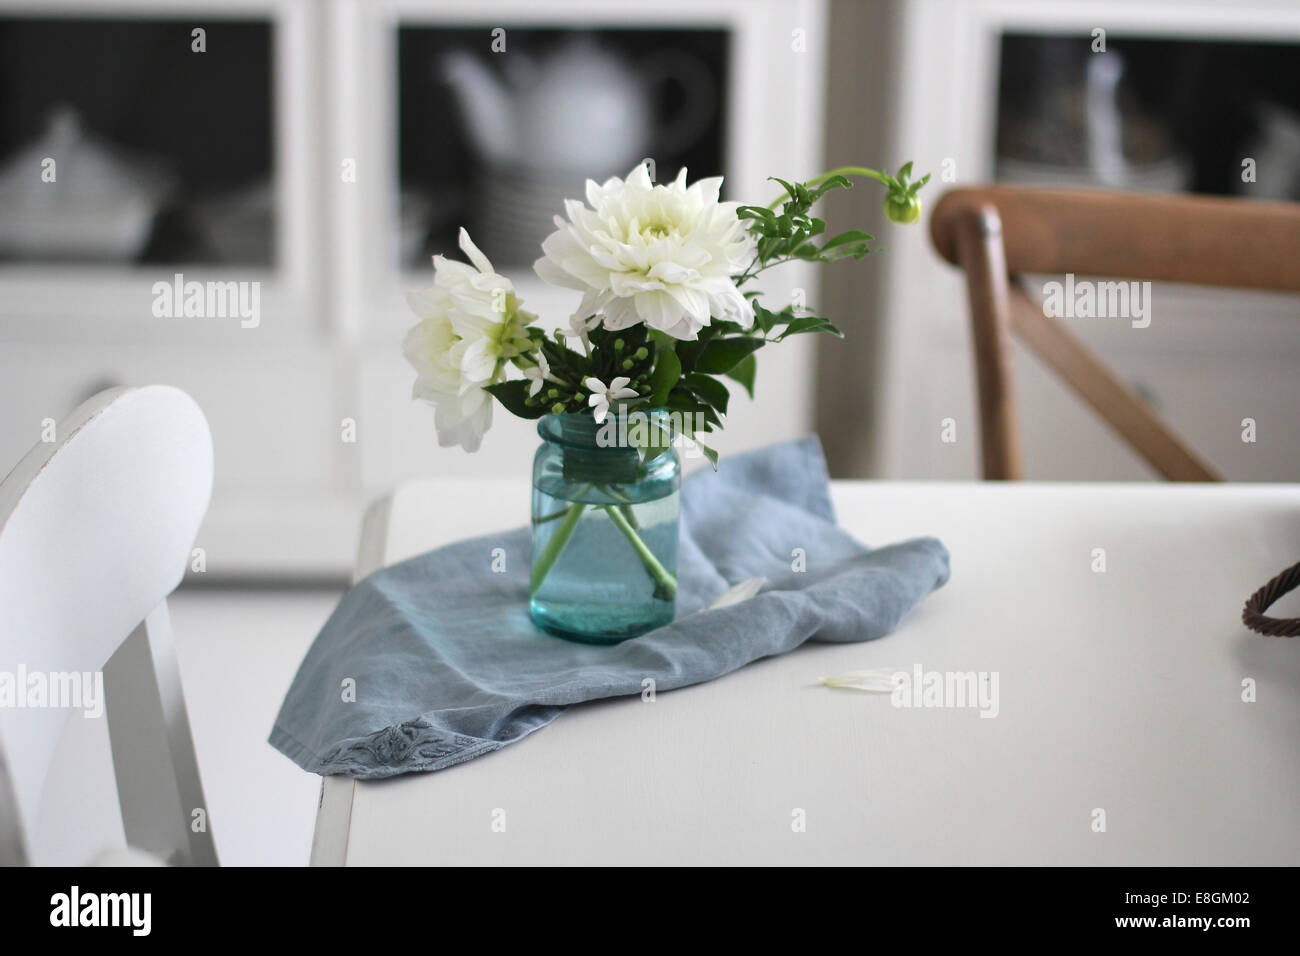 Vase of flowers and napkin on dining room table - Stock Image